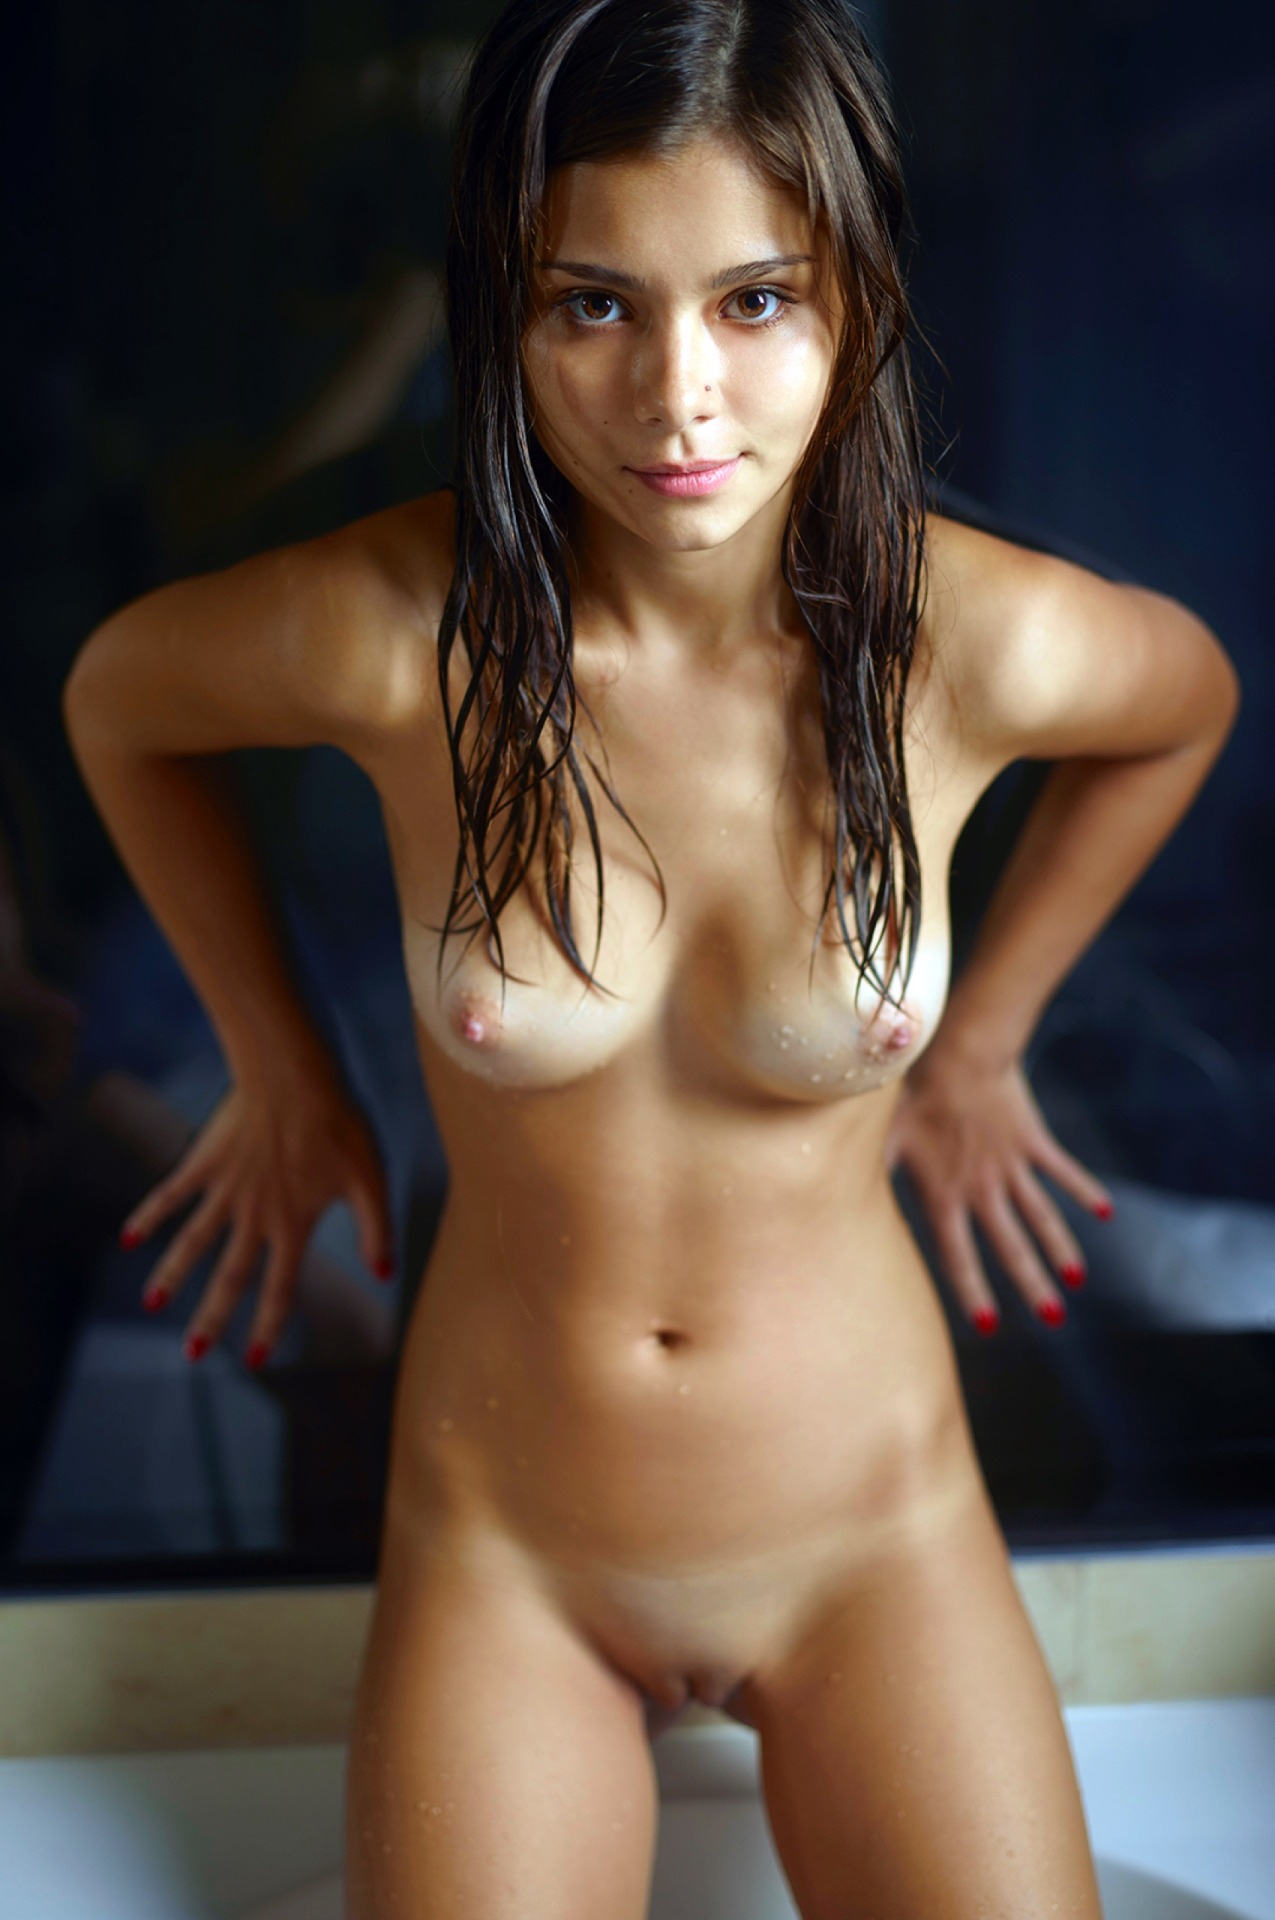 pics-very-young-girls-naked-completly